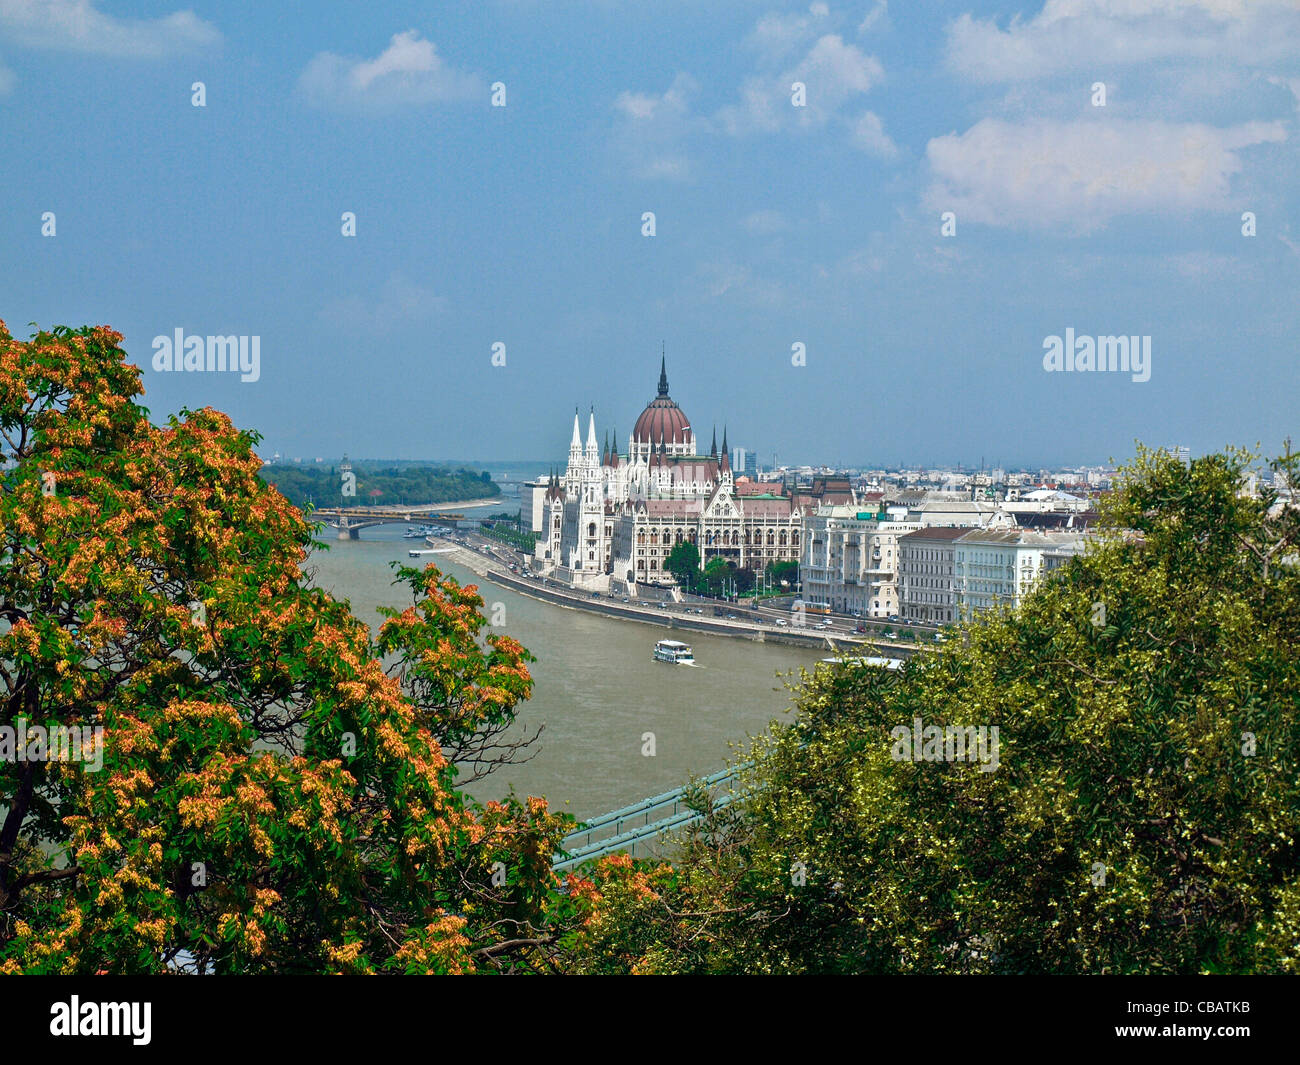 Danube River and the Hungarian Parliament as seen from Castle Hill Budapest, Hungary - Stock Image